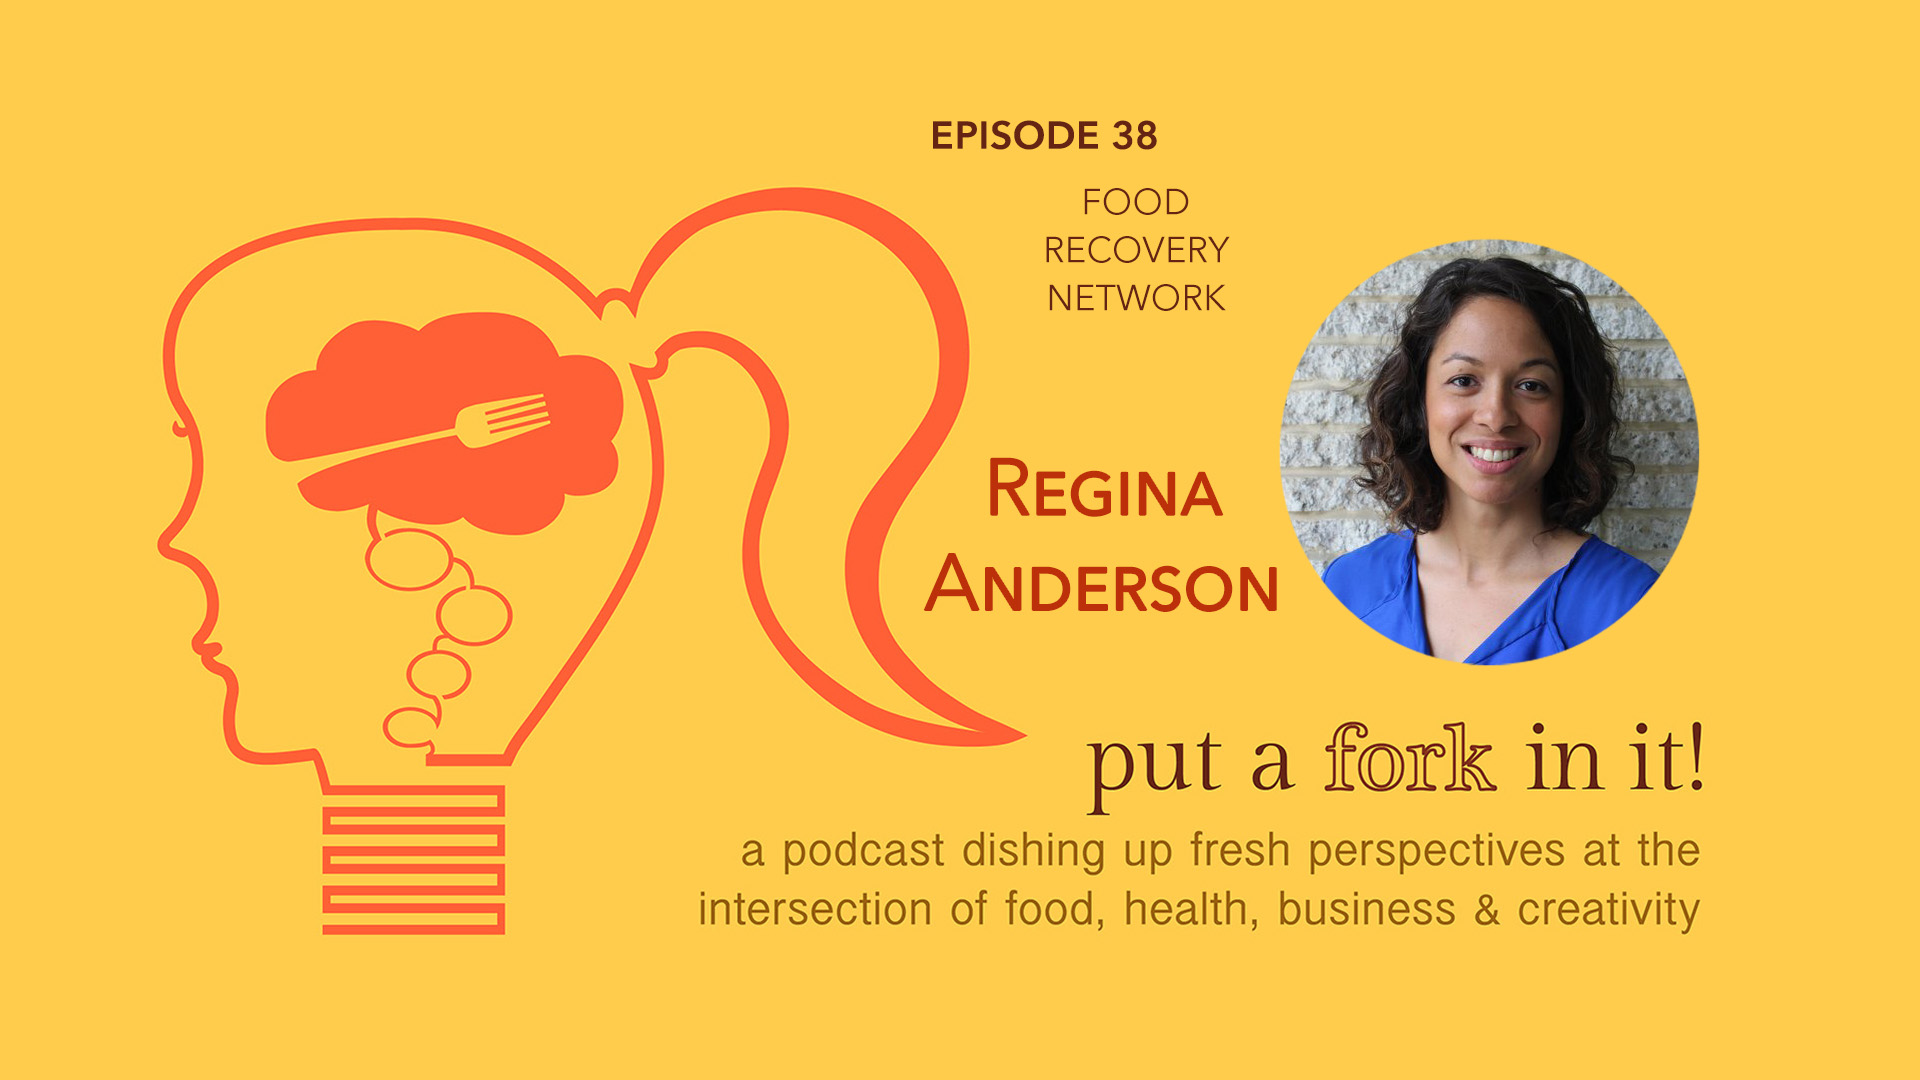 38: Regina Anderson, Executive Director of the Food Recovery Network